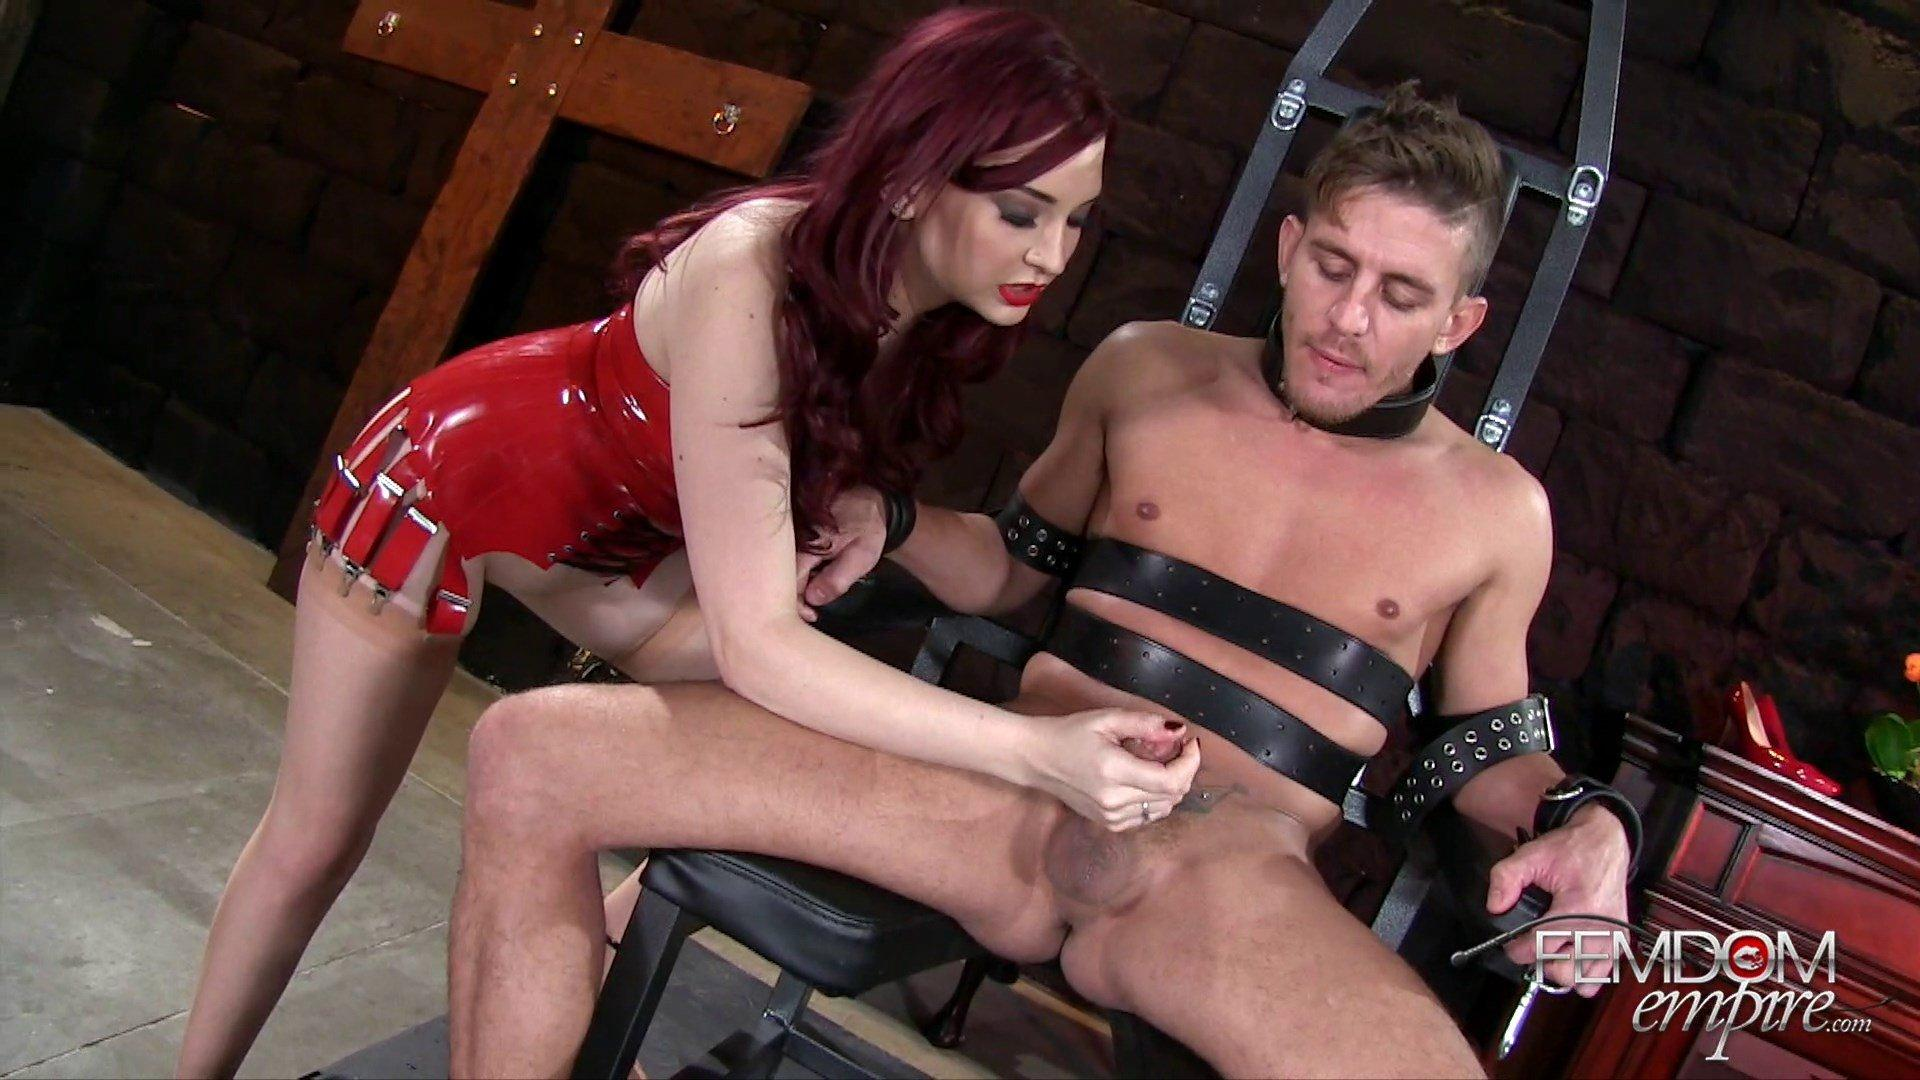 LOUISE: Forced femdom milking erotic